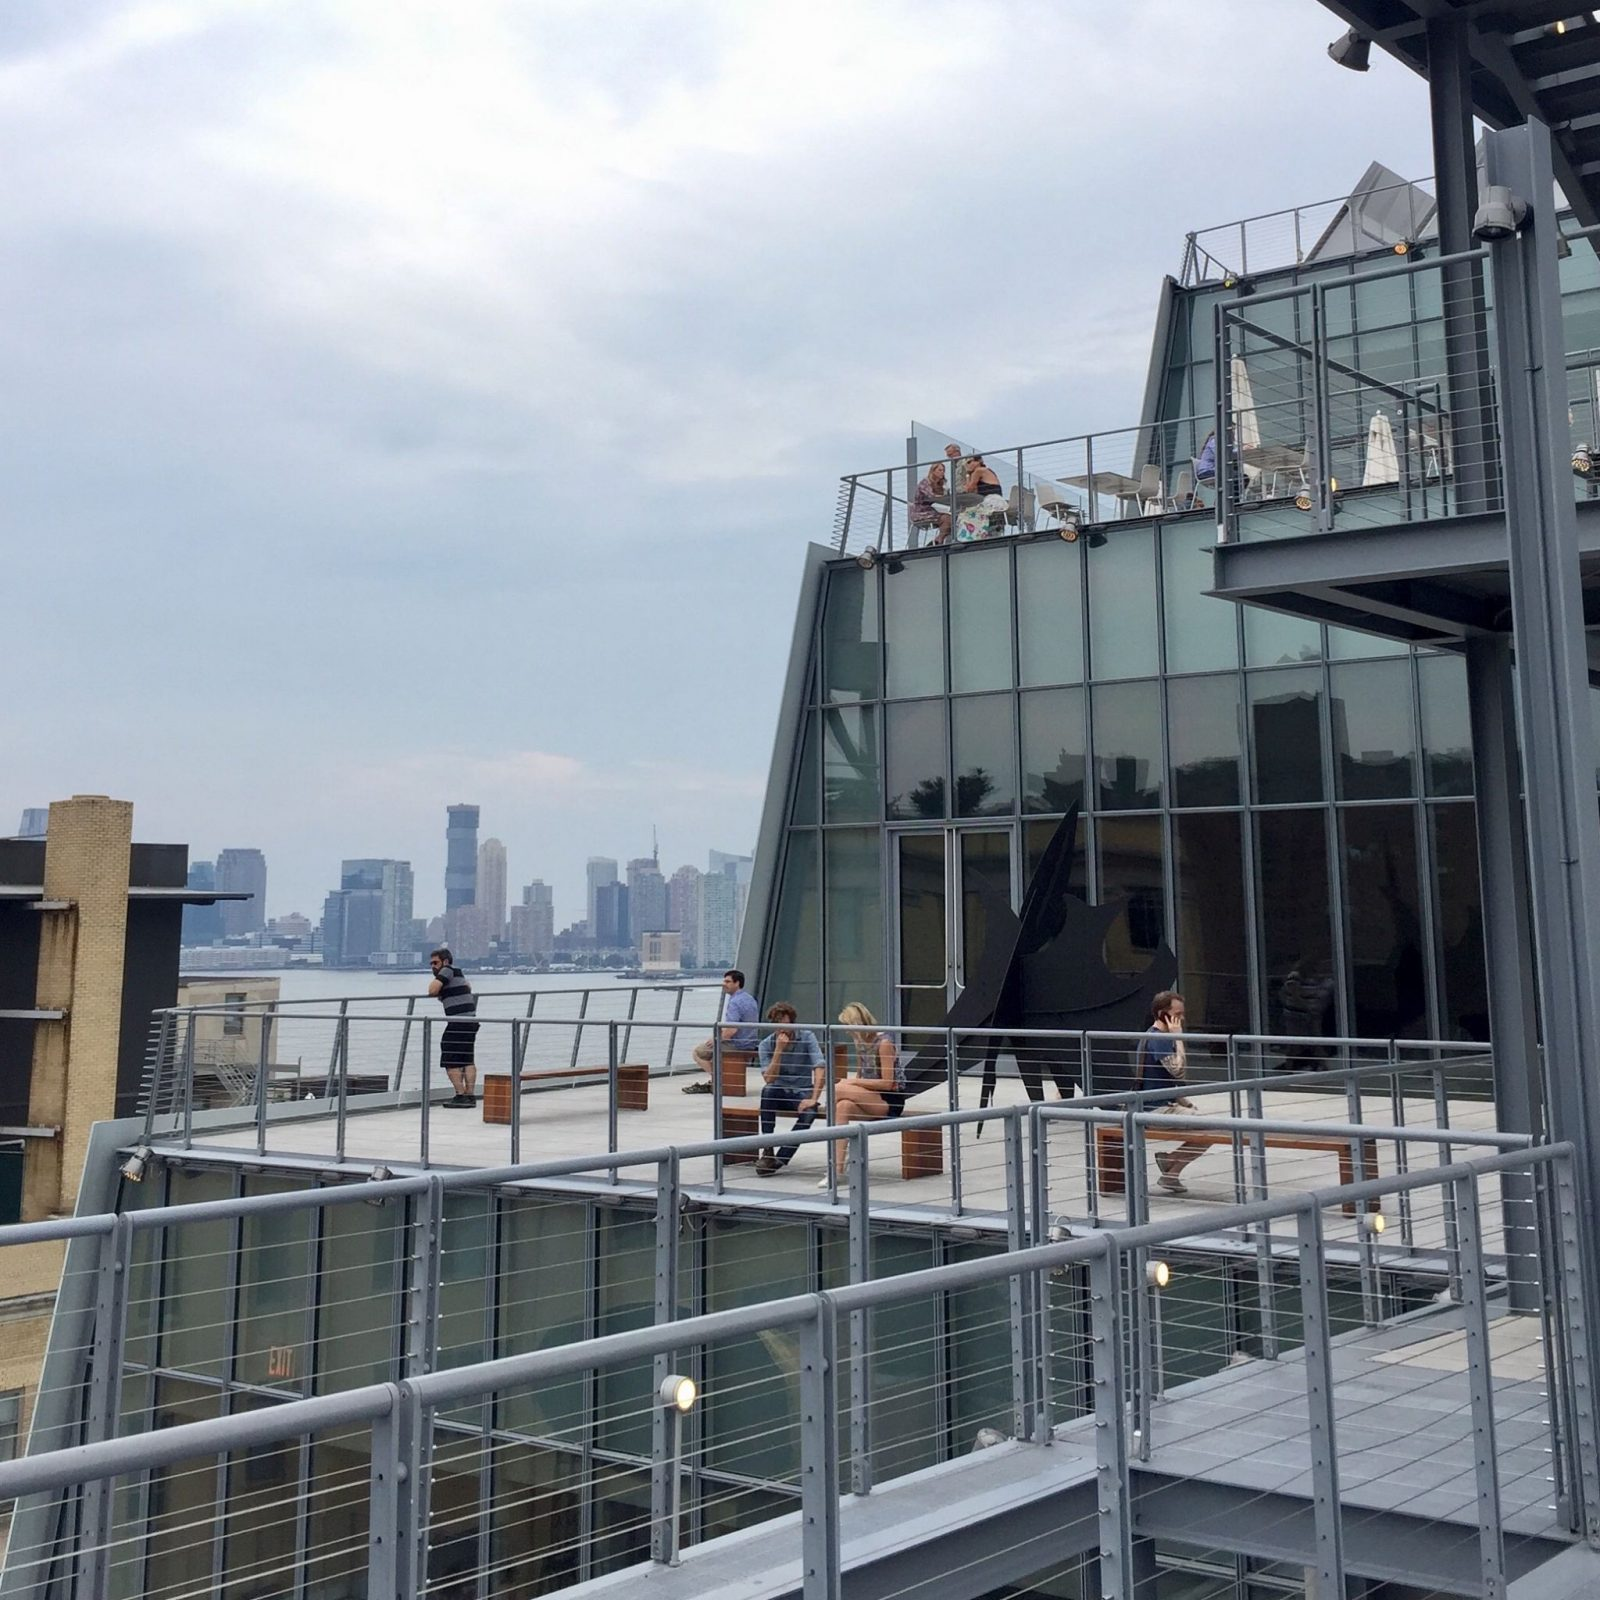 Outside on the deck at the Whitney Museum in New York in the summer.